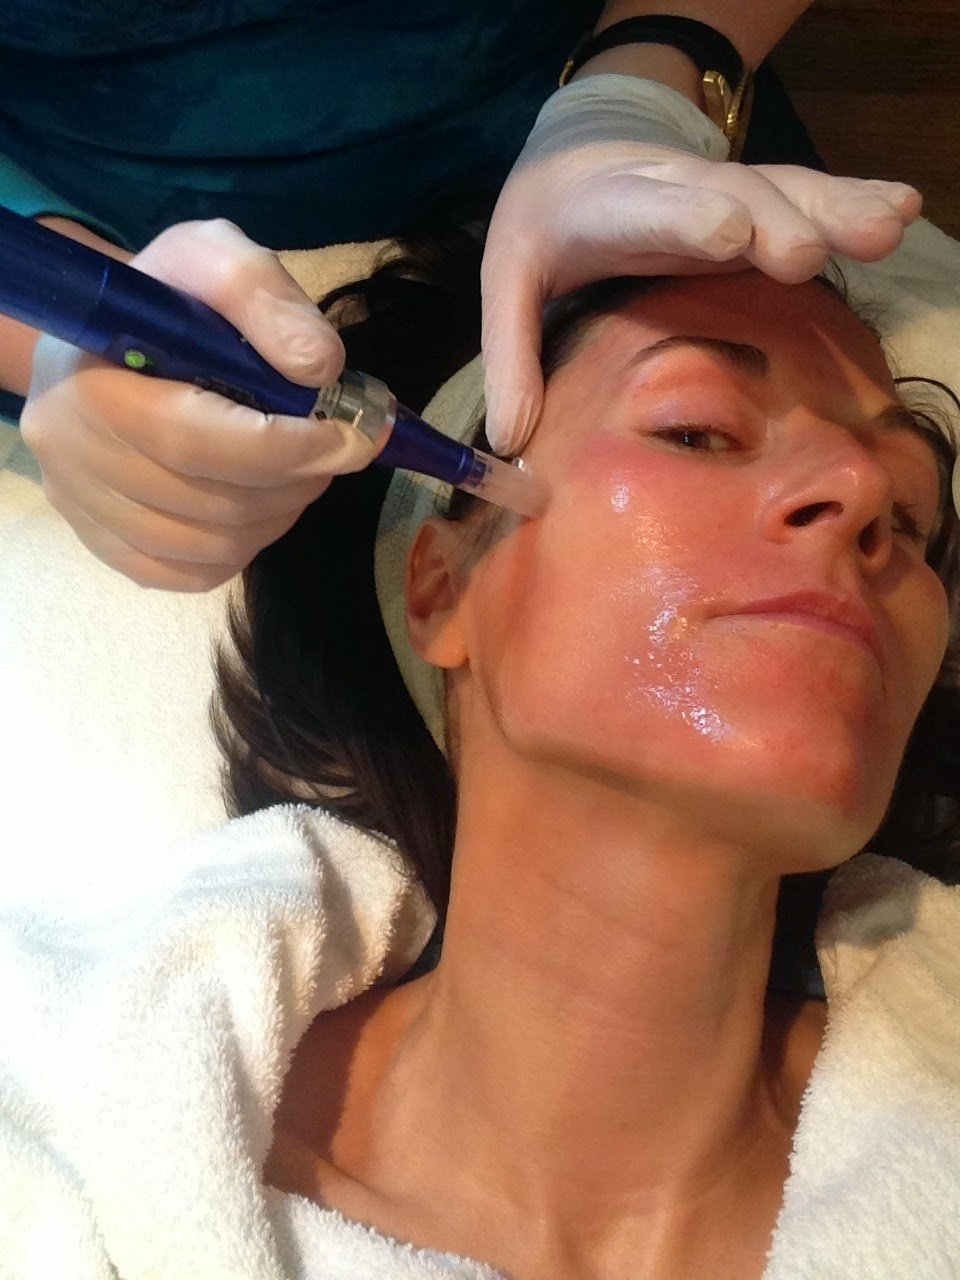 SkinPen Microneedling For Removing Acne Scars